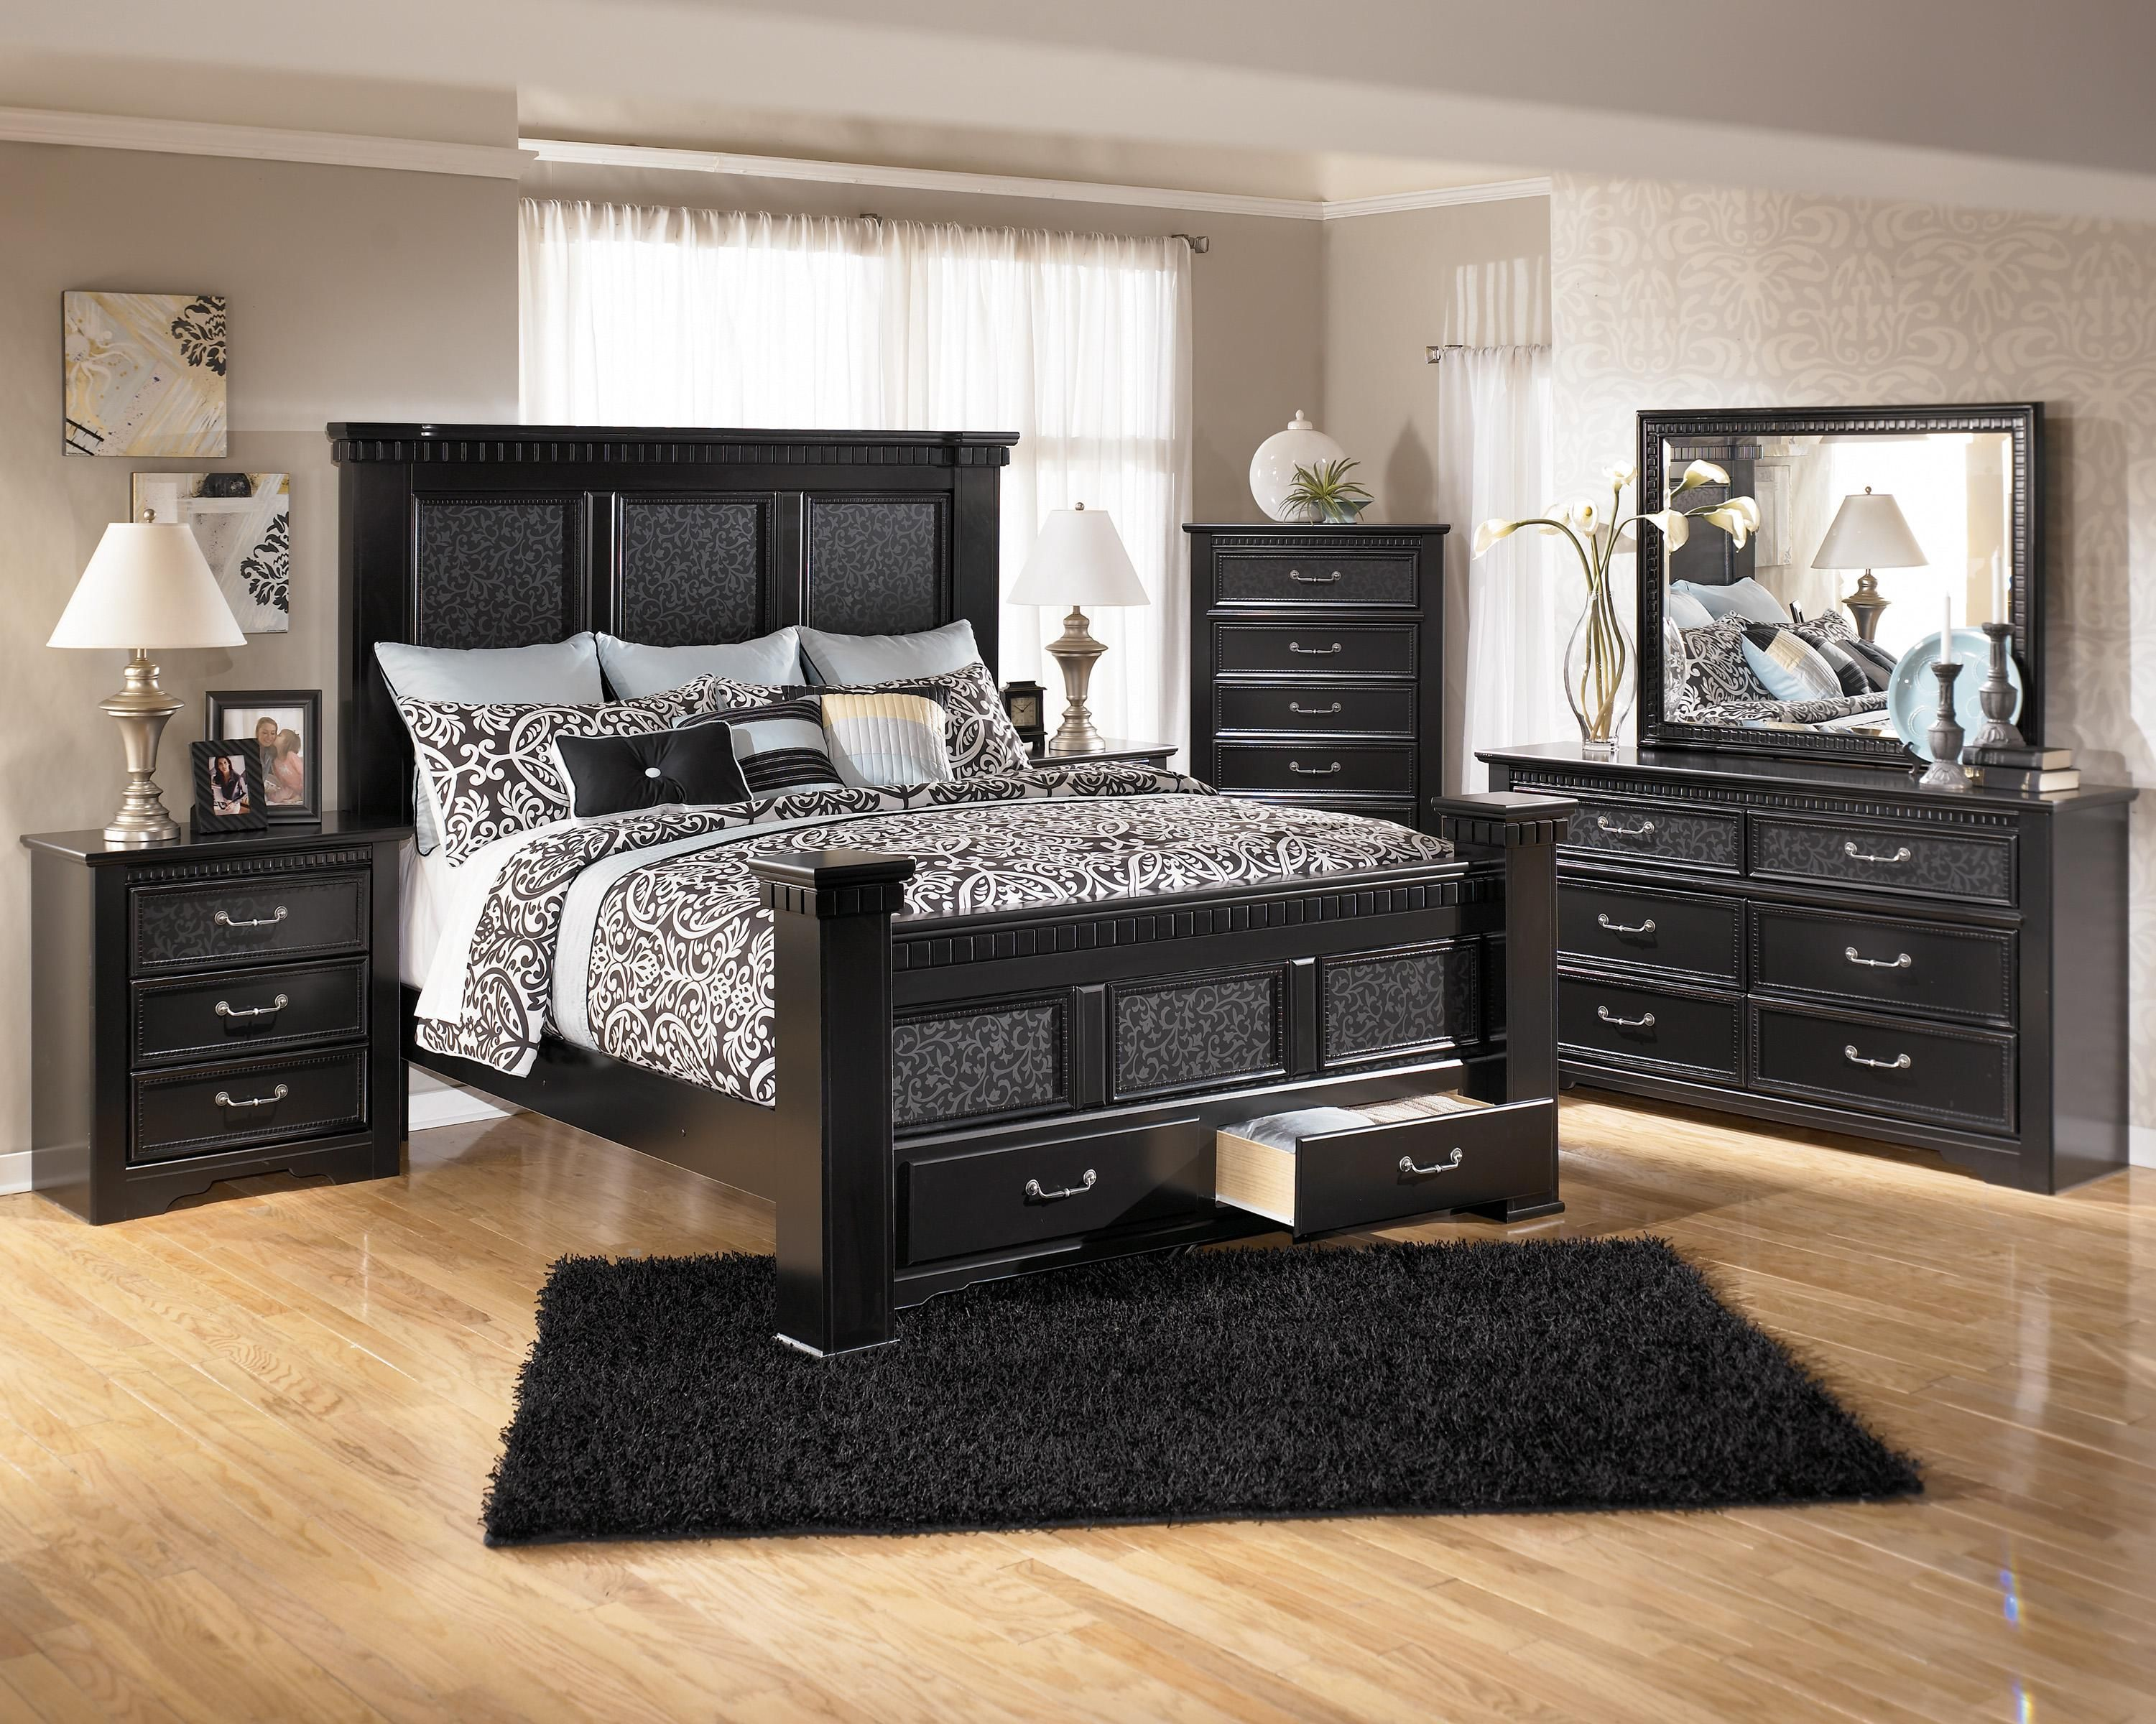 ashley furniture cavallino bedroom set with mansion poster bed storage footboard bed only 79995 bedroom furniture photo